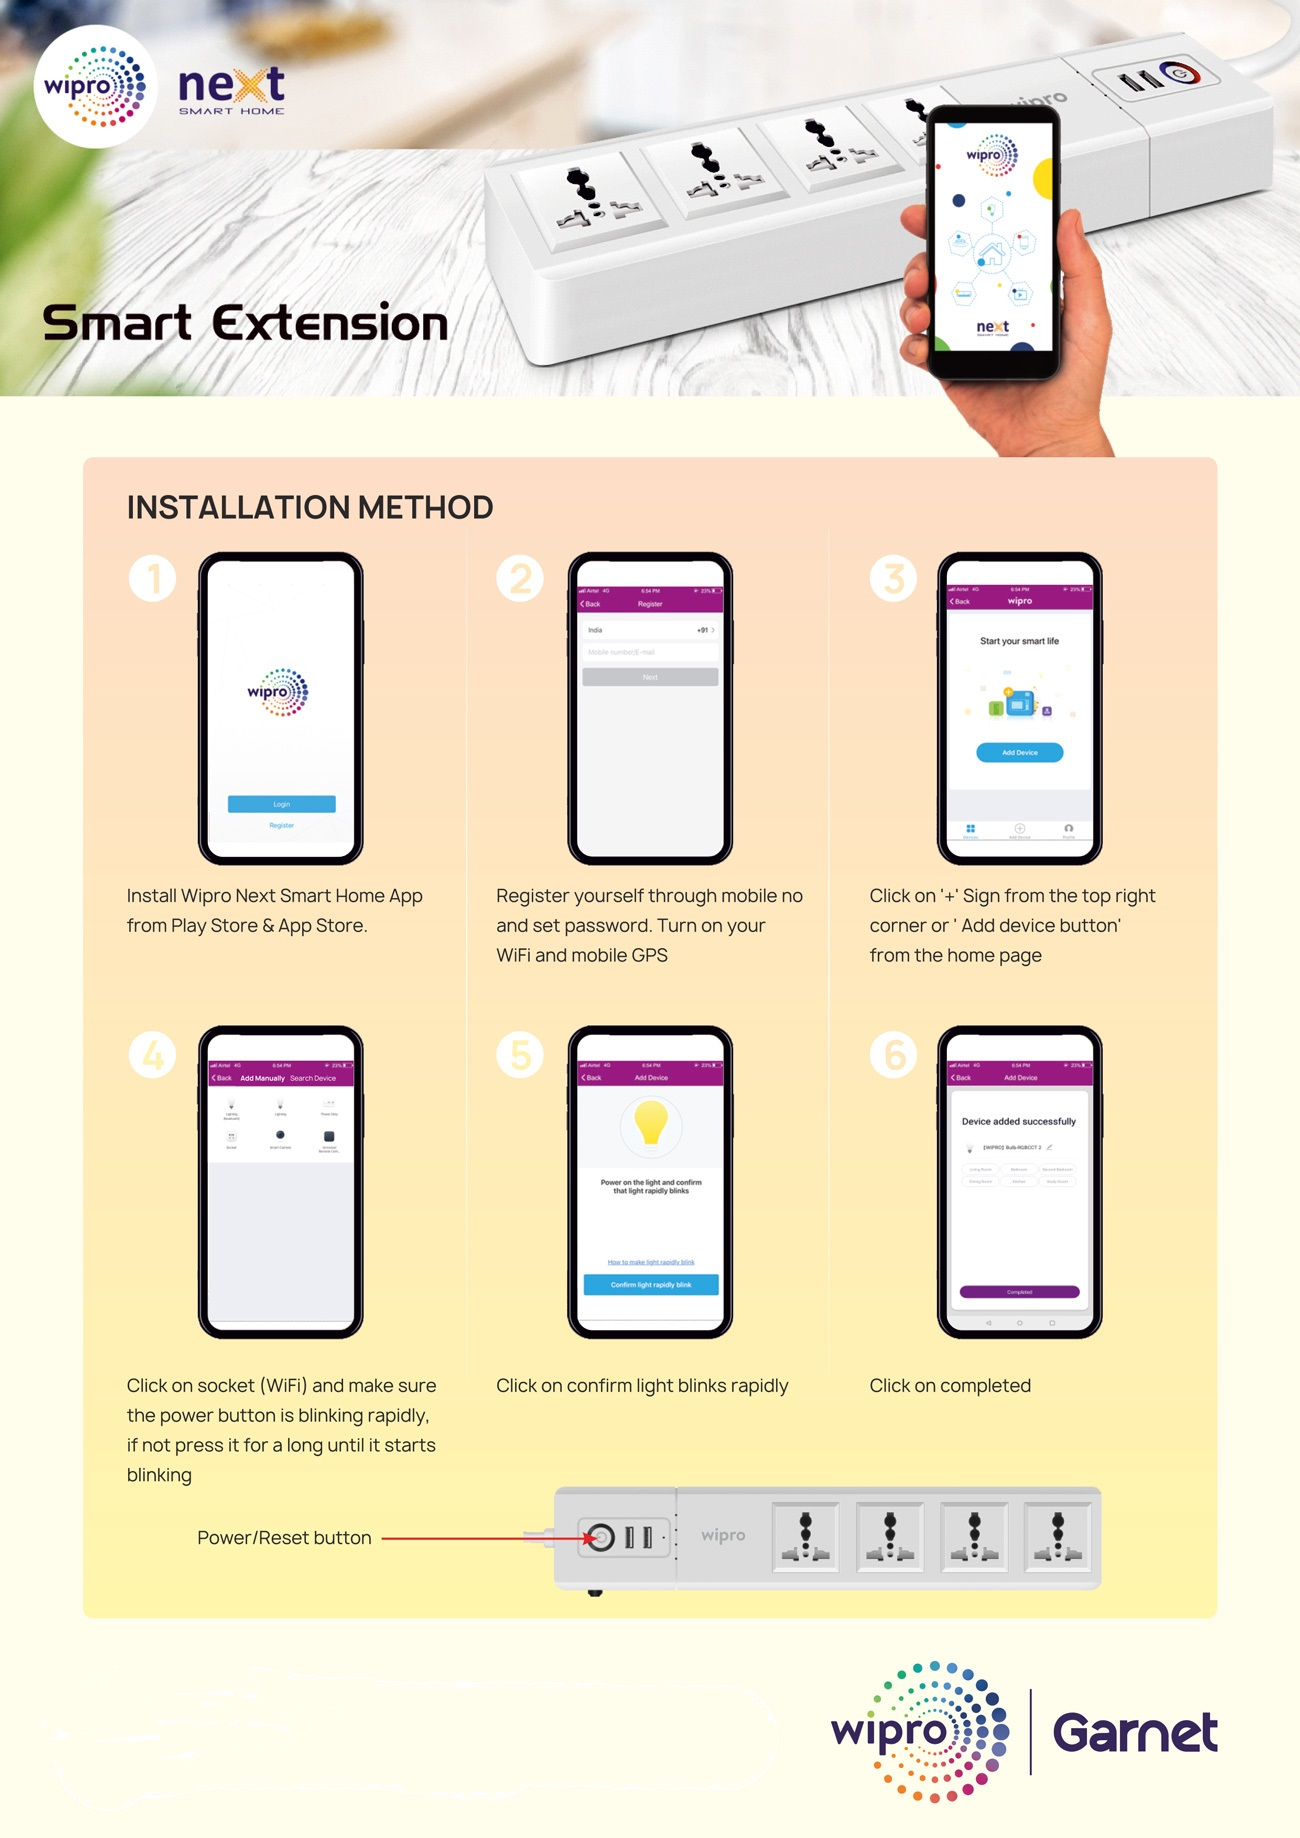 Wipro Garnet Smart Extension Box